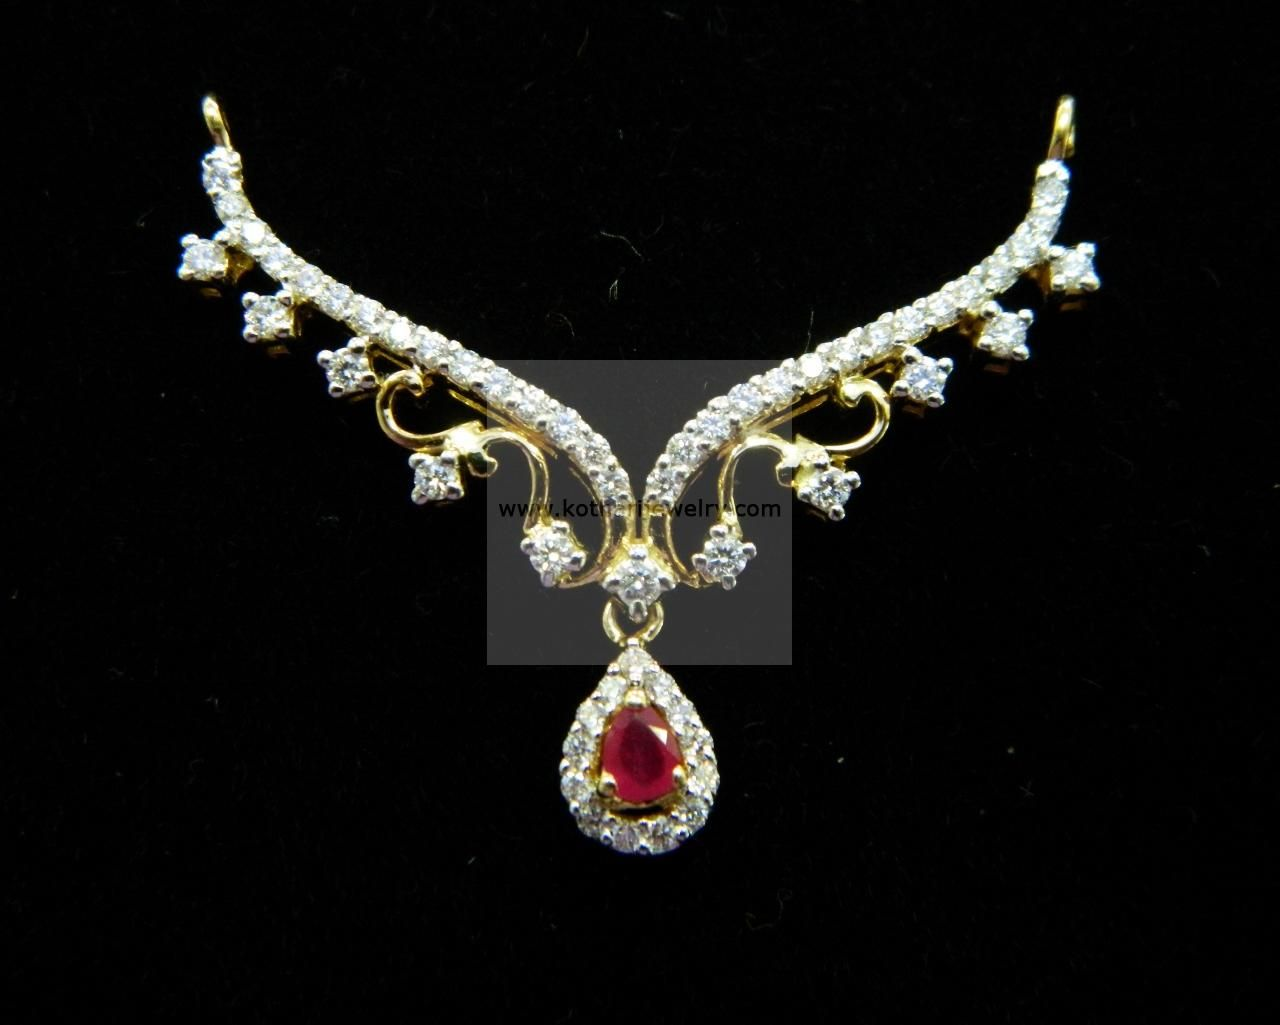 Mangalsutra diamond jewelry mangalsutra djpam at usd